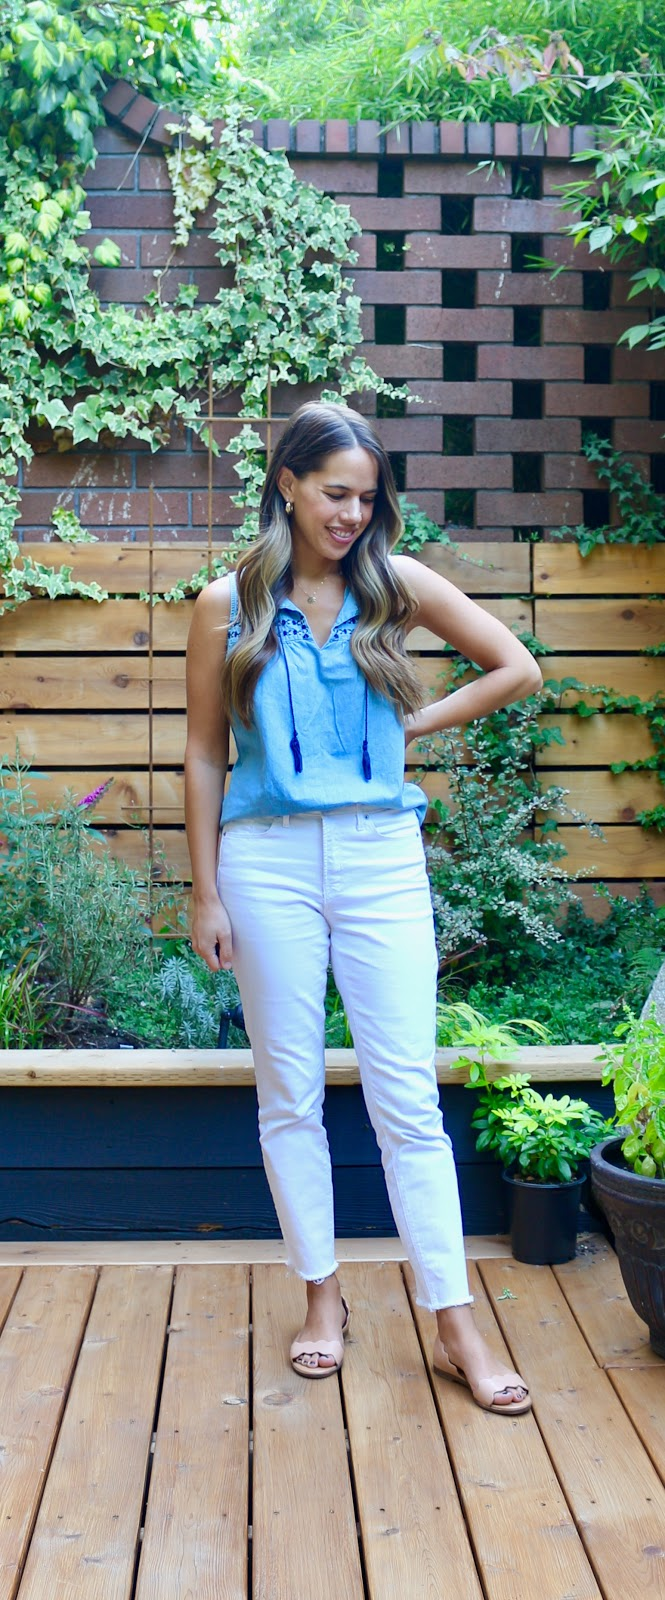 Jules in Flats - Sleeveless Tassel Tie Chambray Top with White Jeans (Business Casual Workwear on a Budget)